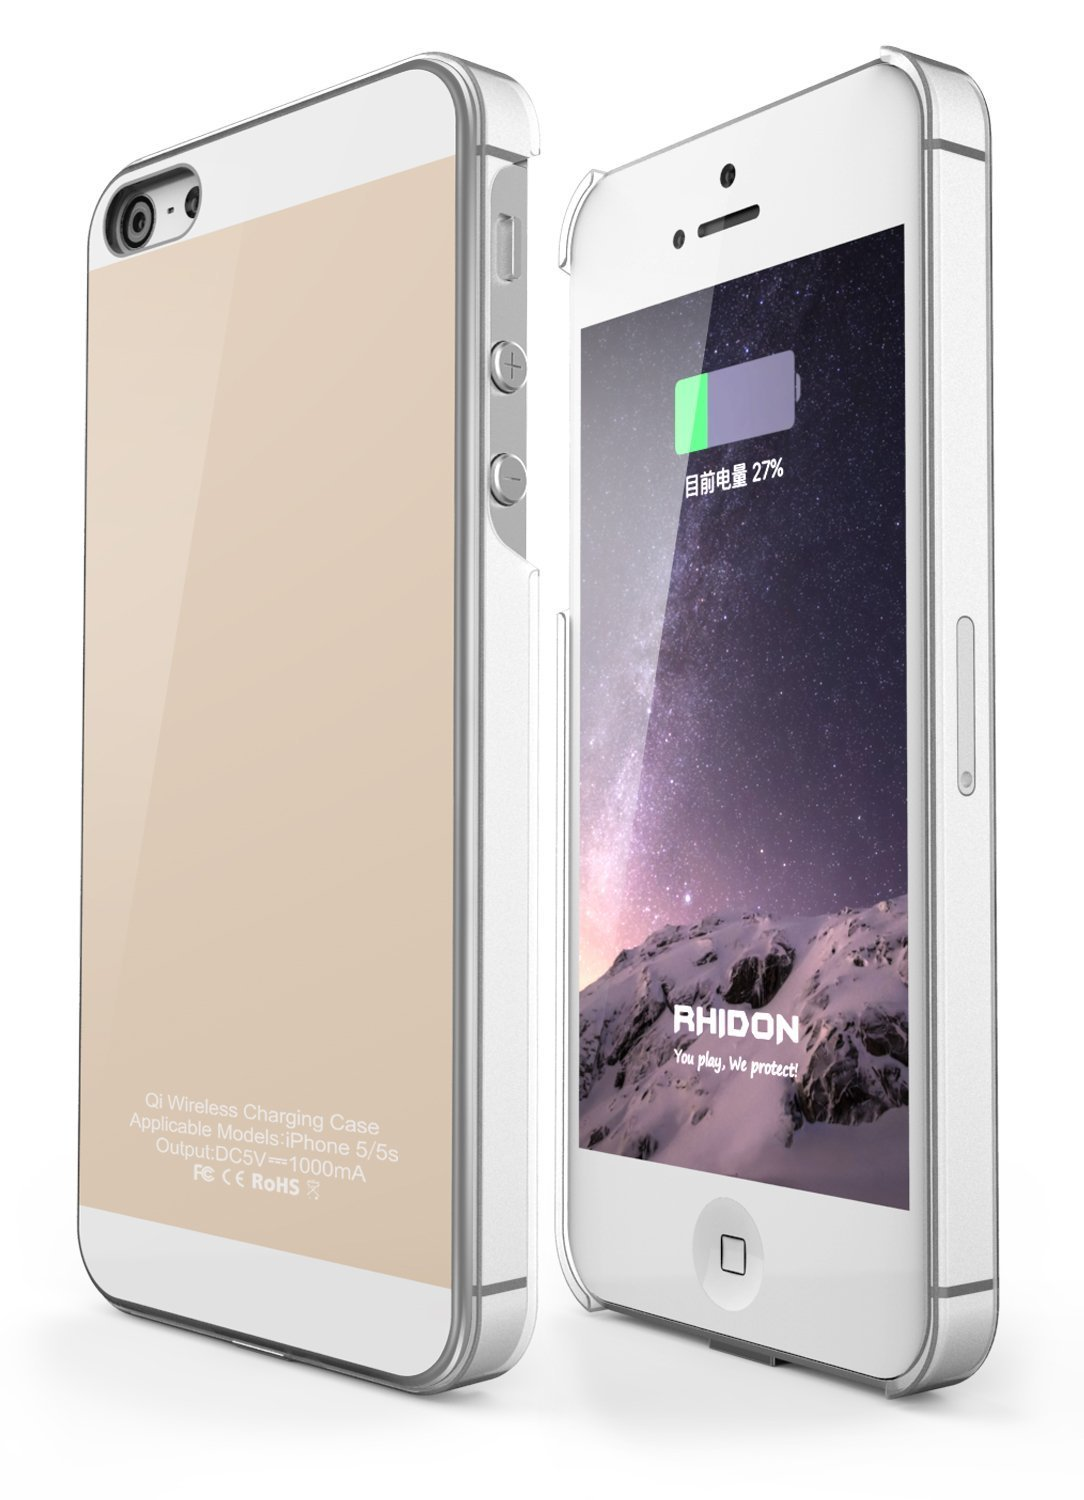 iPhone 5 5s SE Qi Wireless Charging Case Back Cover Flexible Lightning Connector 1A Upgrade Rose Gold iPhone 5 5S SE Wireless Receiver Case